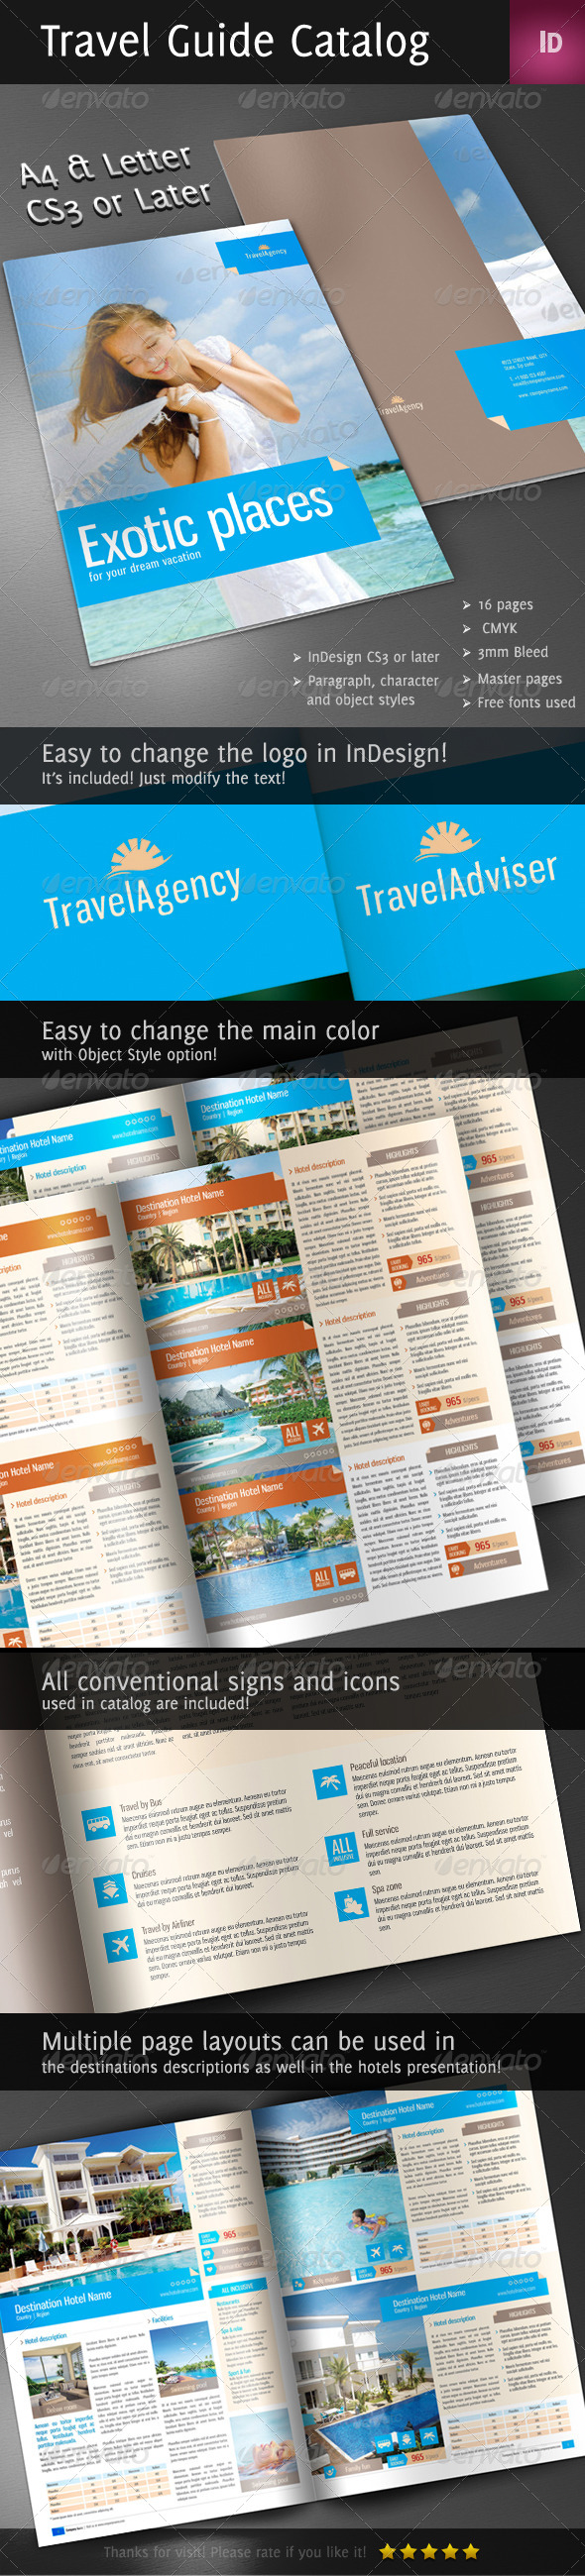 GraphicRiver Travel Guide Catalog 4028374